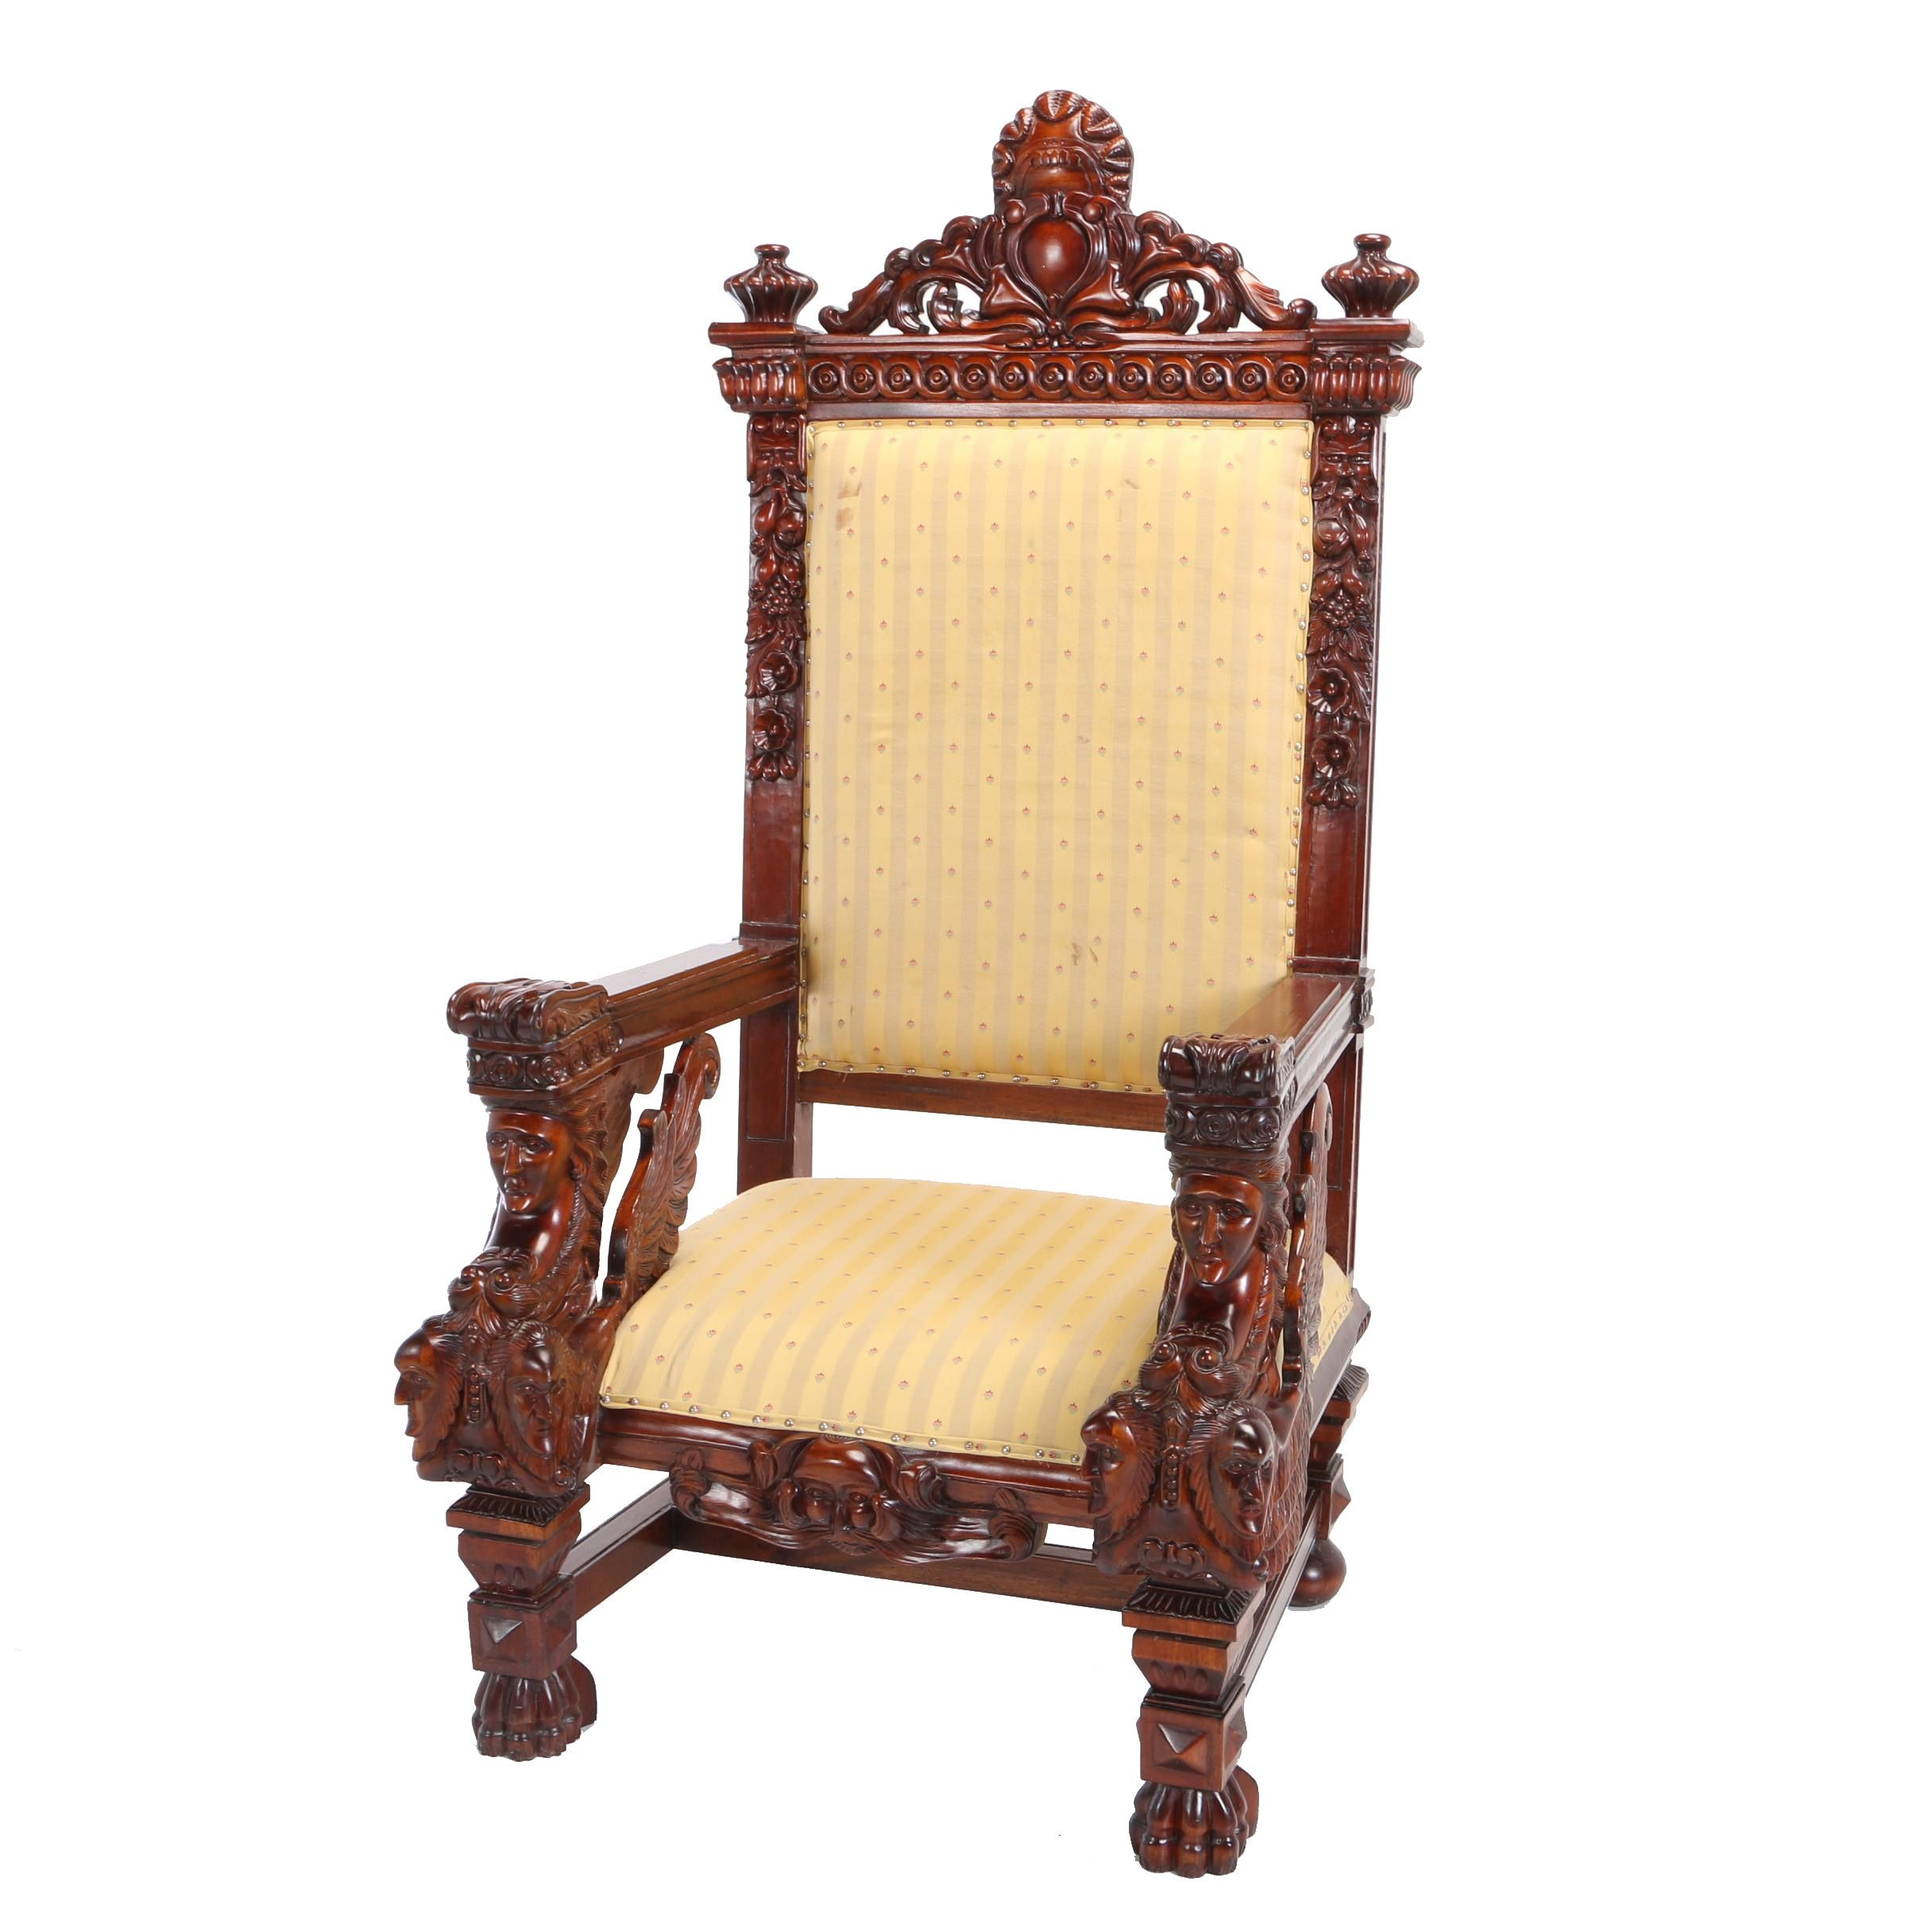 Baroque Style Mahogany Throne Chair, 20th Century